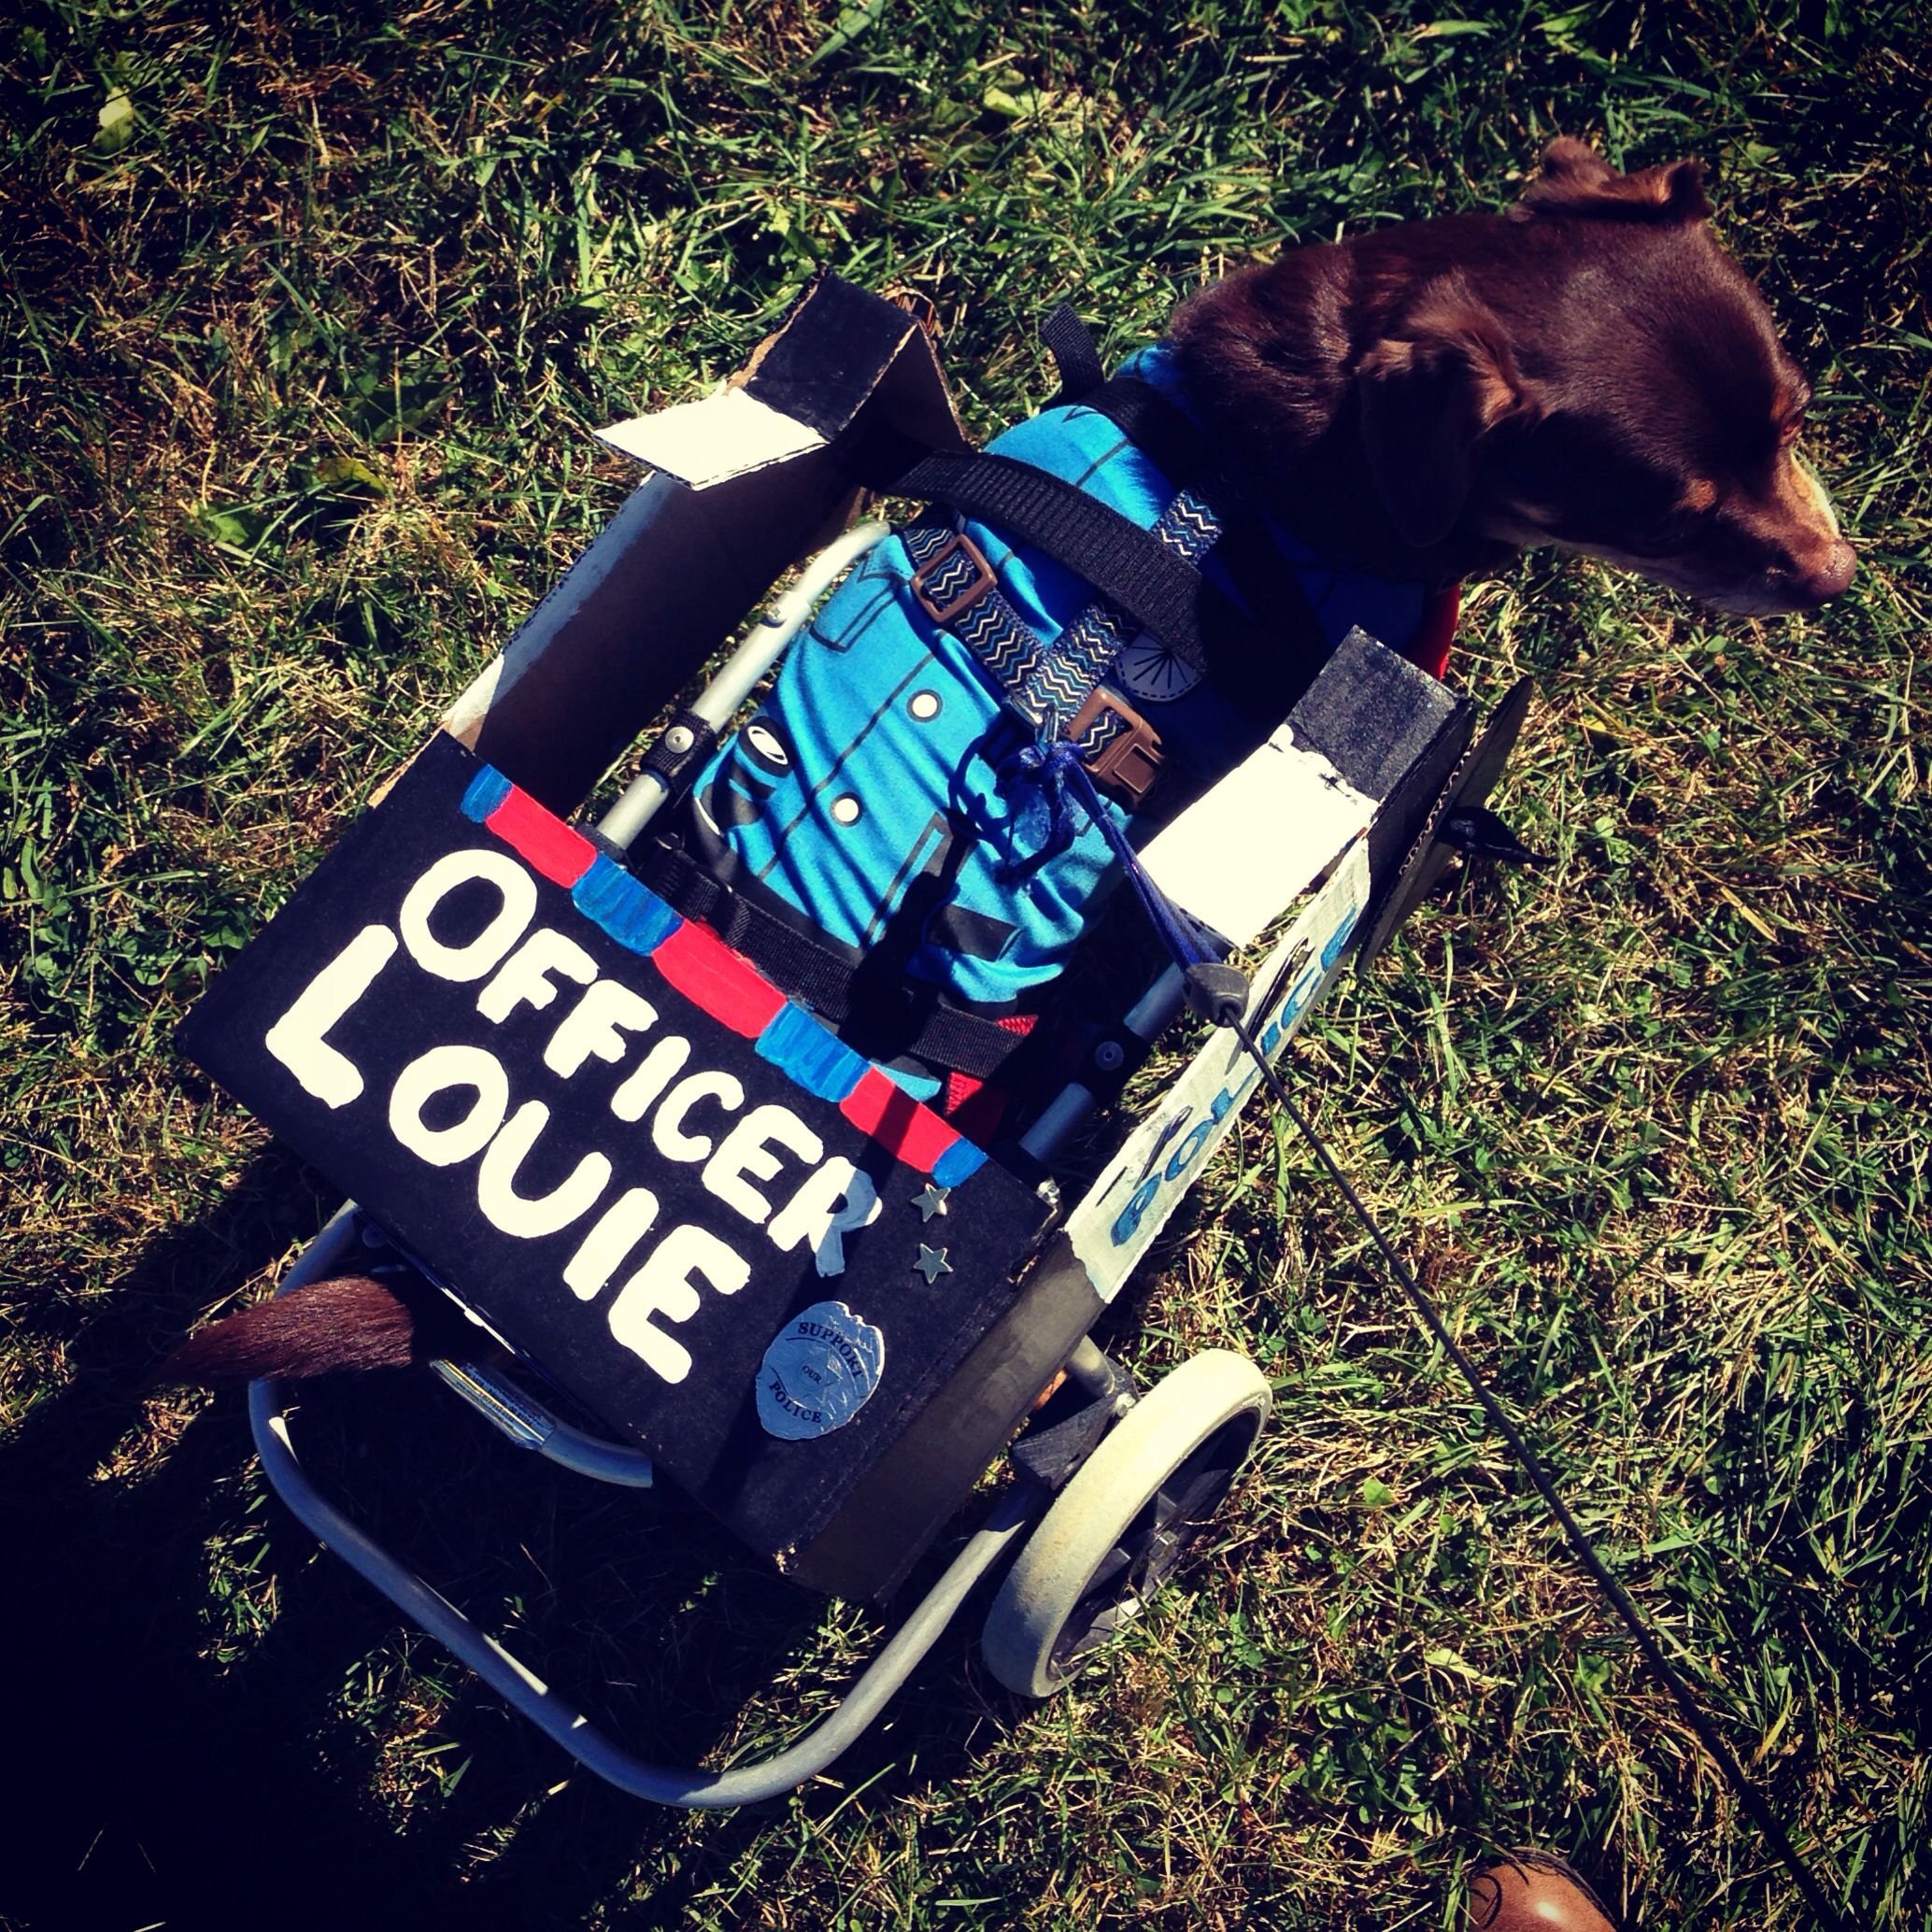 Louie Cazan the wheelchair dog in his police officer and